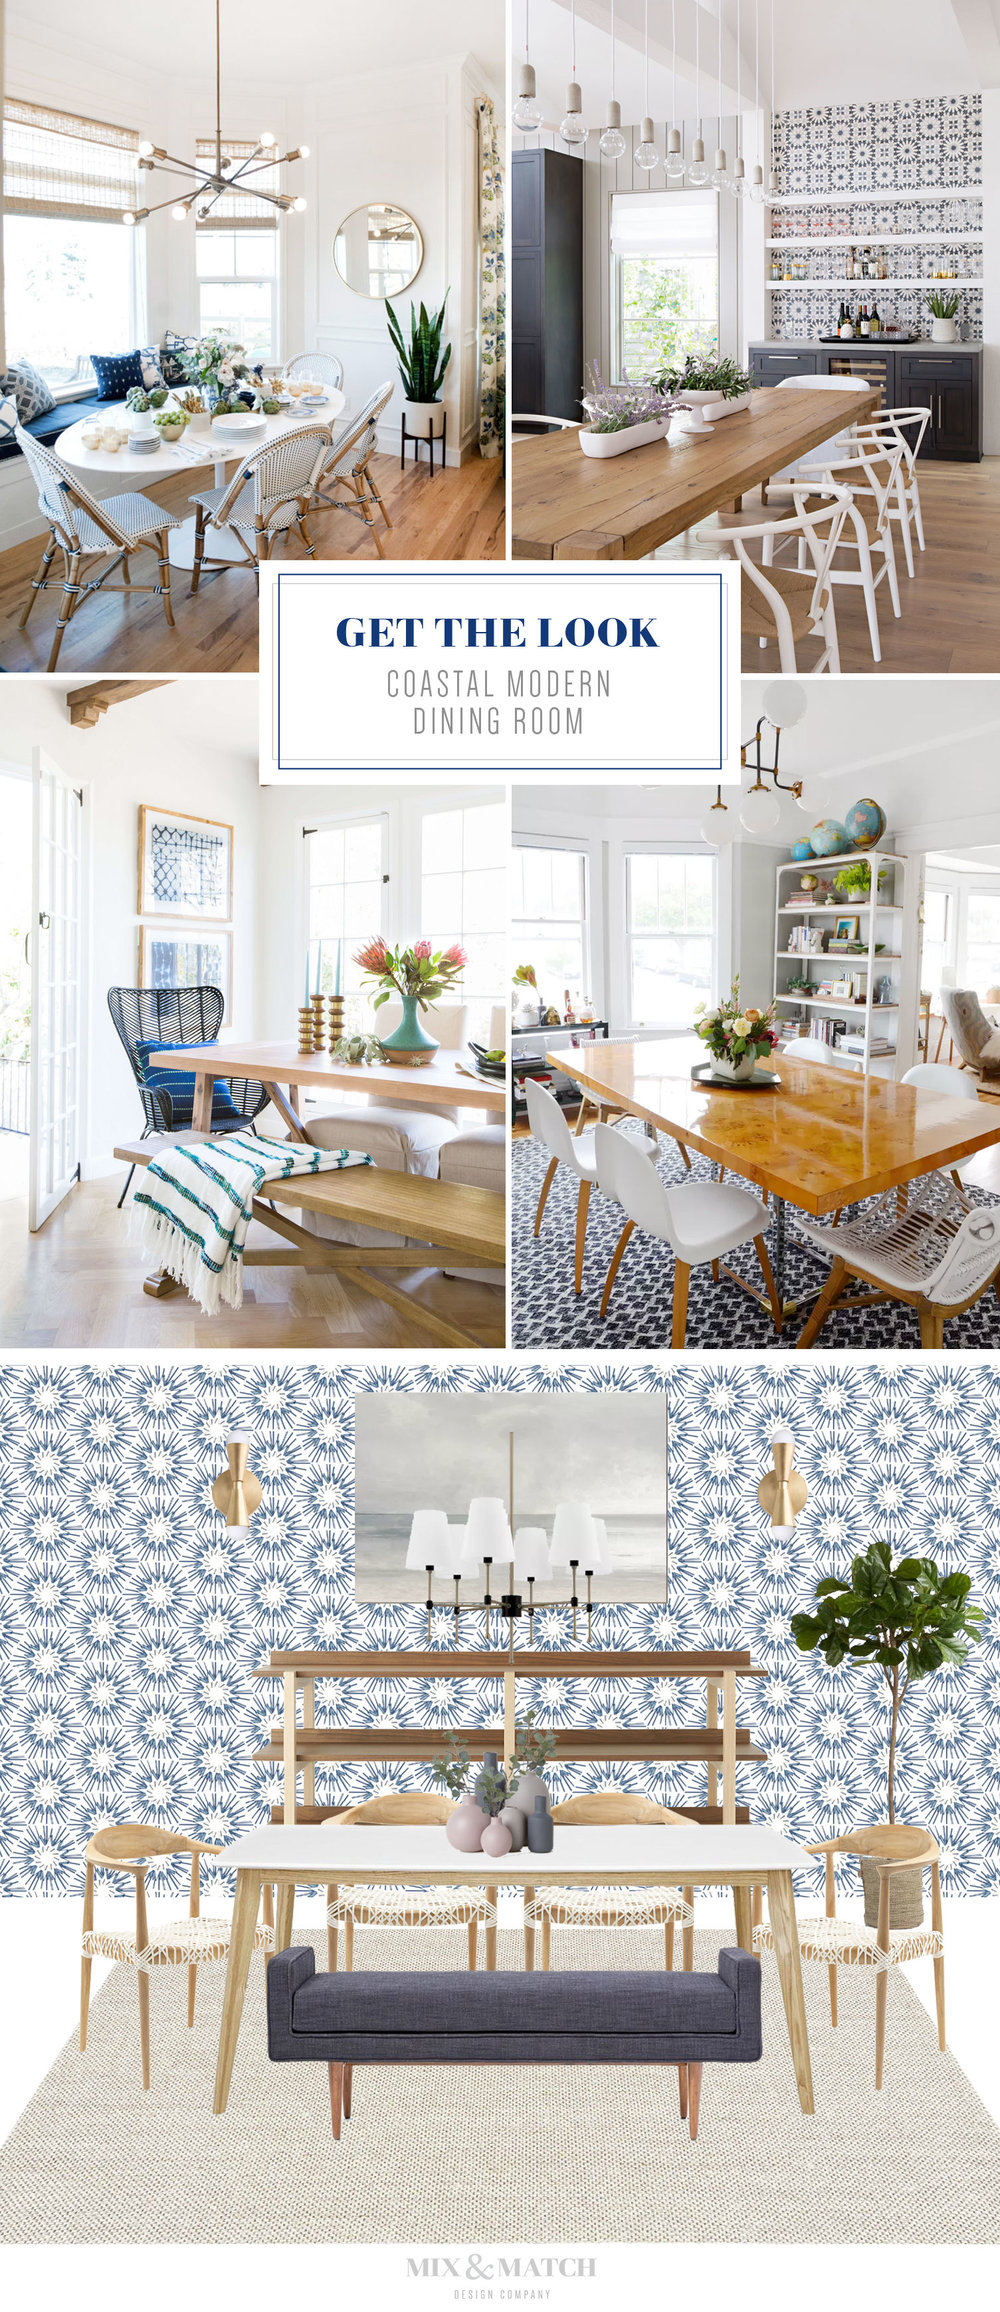 Get the look of this coastal modern dining room on the blog! This blue, white, and light wood space feels fresh, inviting, and cozy. Click over to get all the sources!